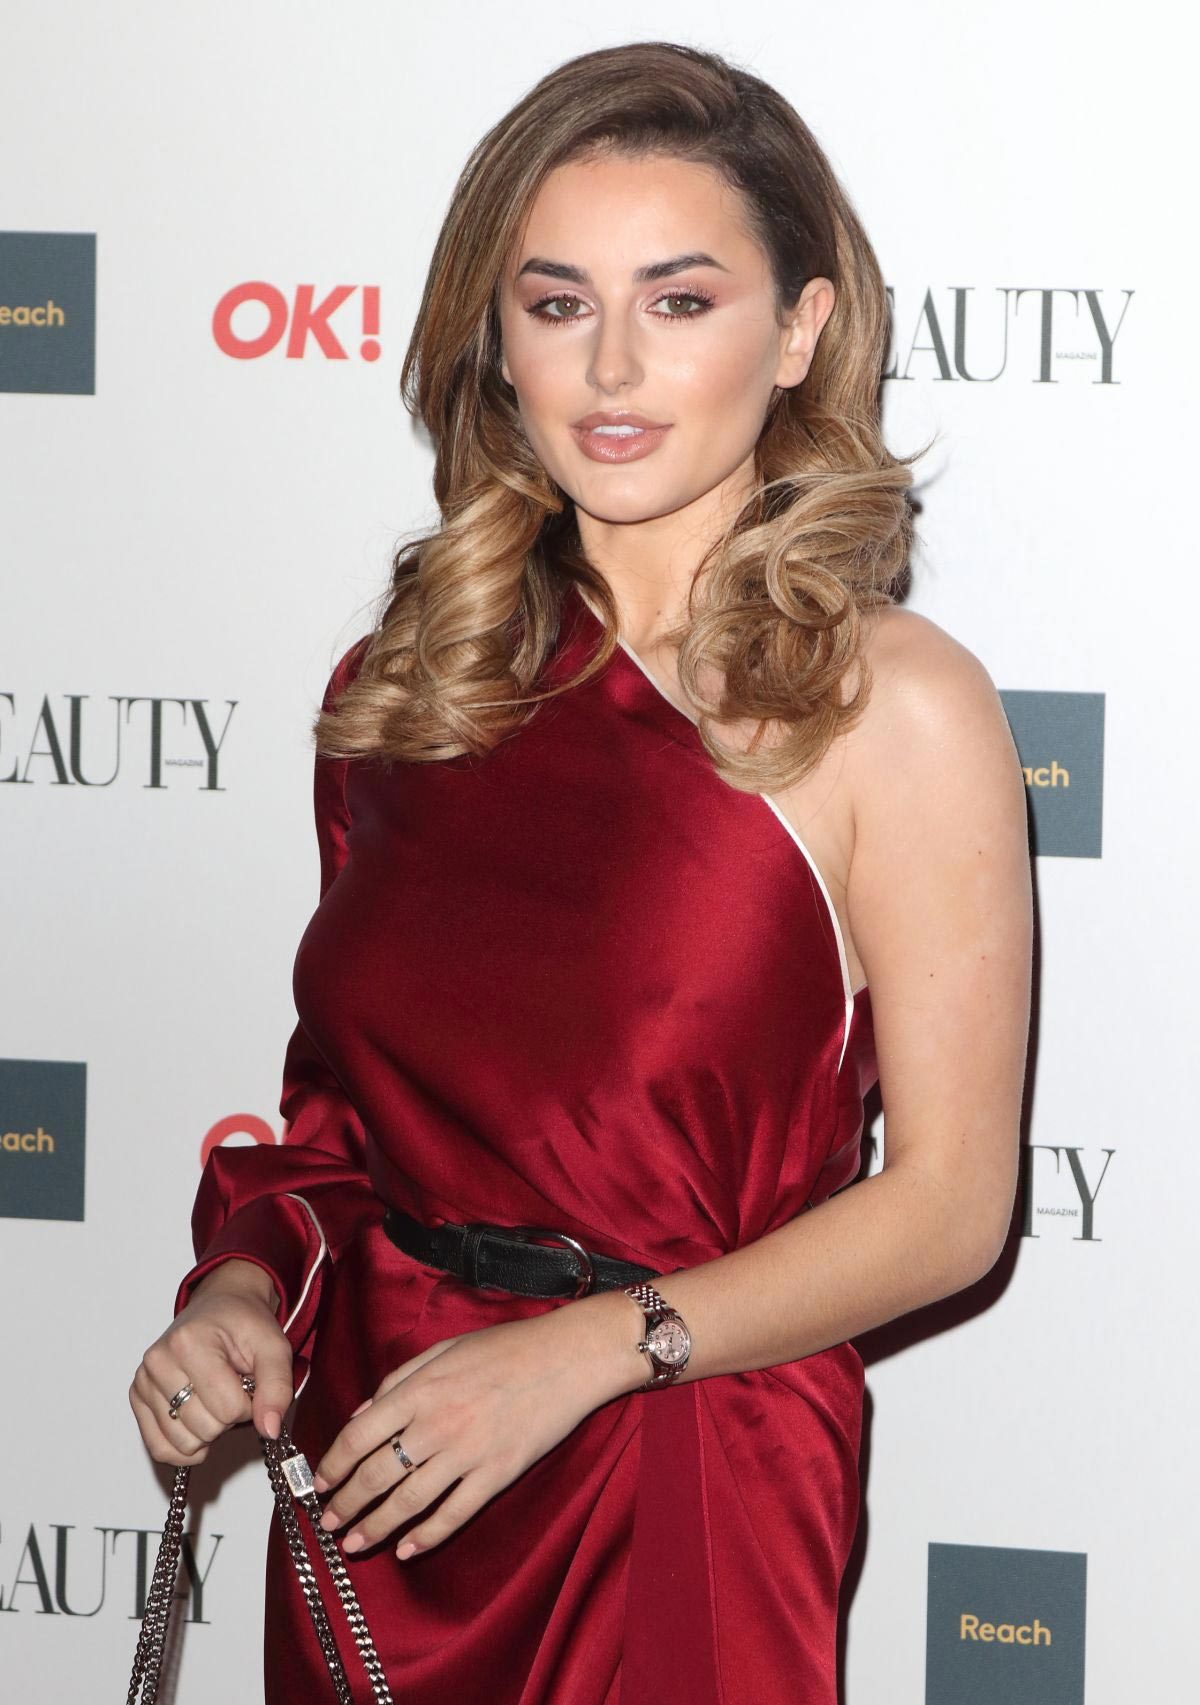 Amber Davies at Beauty Awards 2018 in London 2018/11/26 1